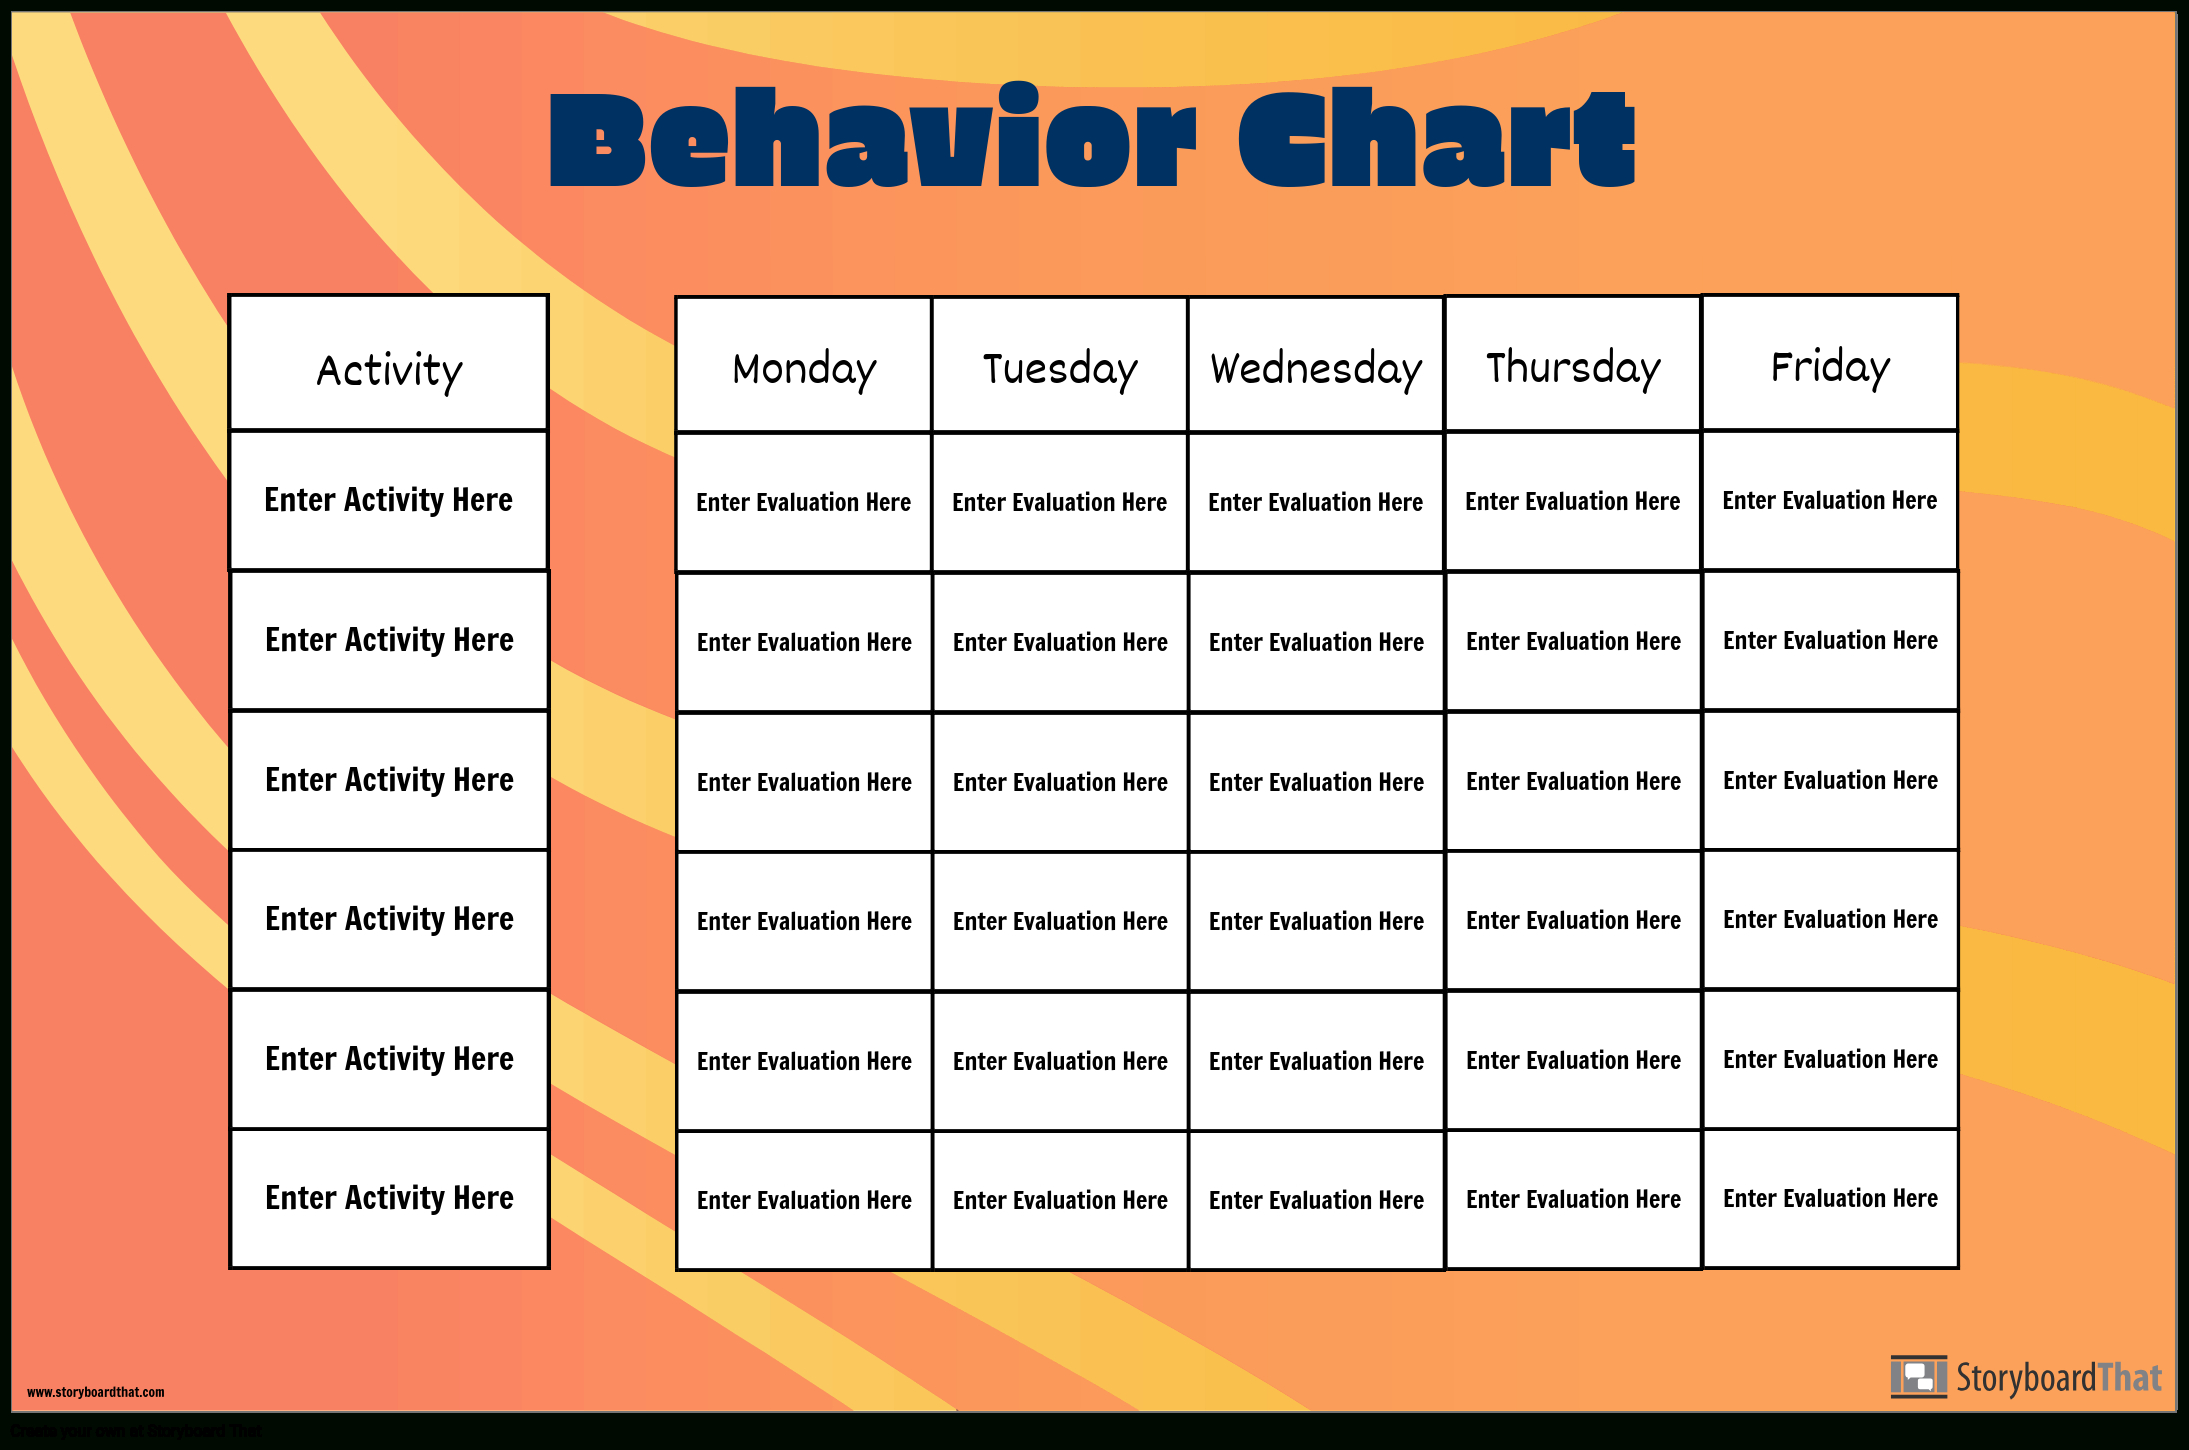 Grid Behavior Chart Storyboardposter Templates Create A Chart From Monday To Friday